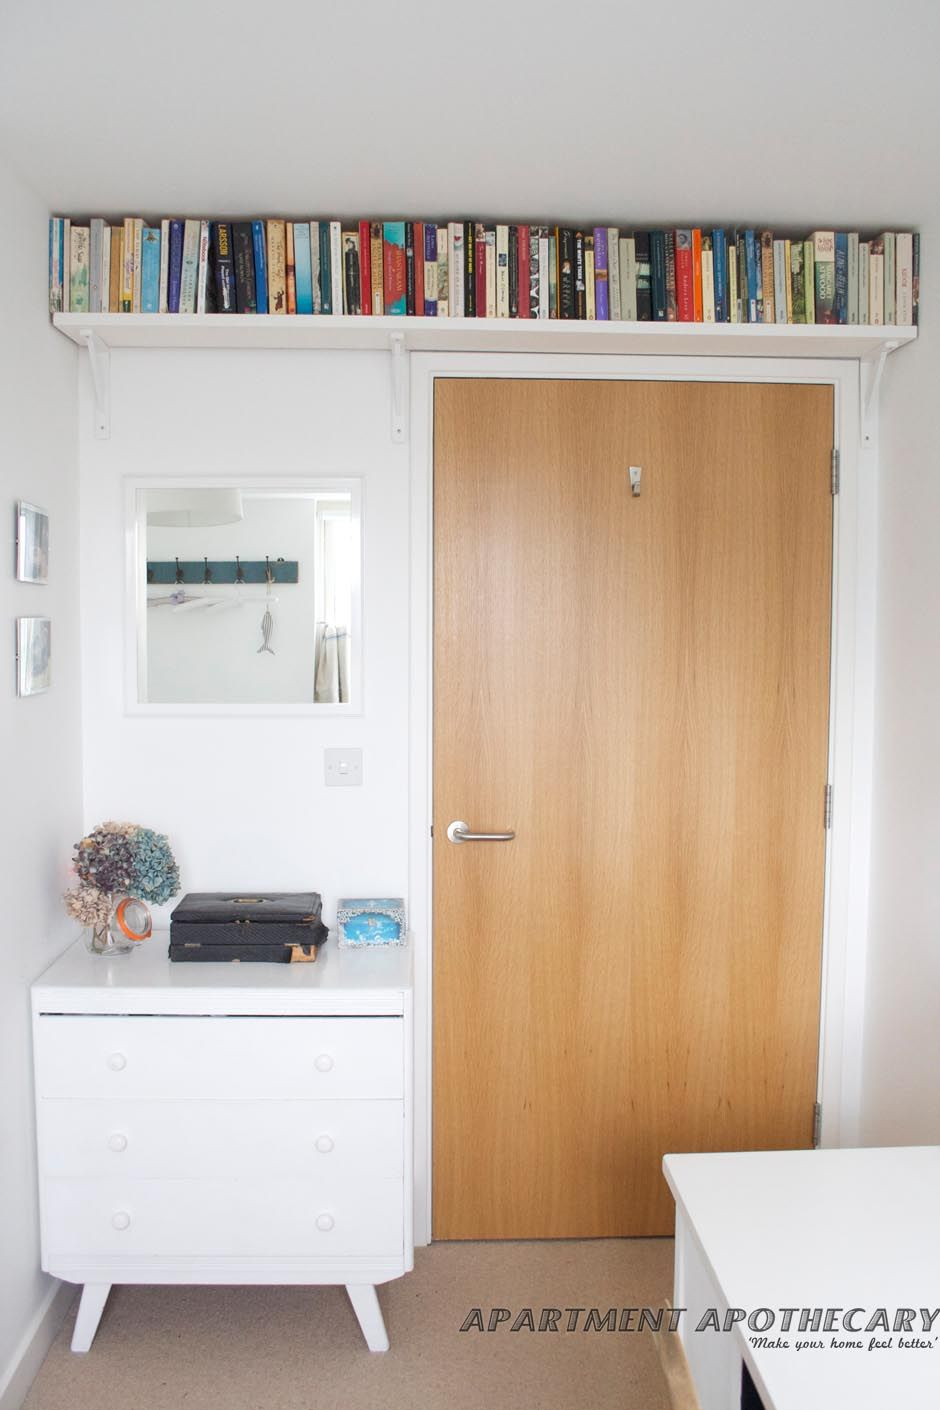 Ordinary Storing Books In Small Spaces Part - 6: 7 Ways To Make Your Small Space Feel Bigger